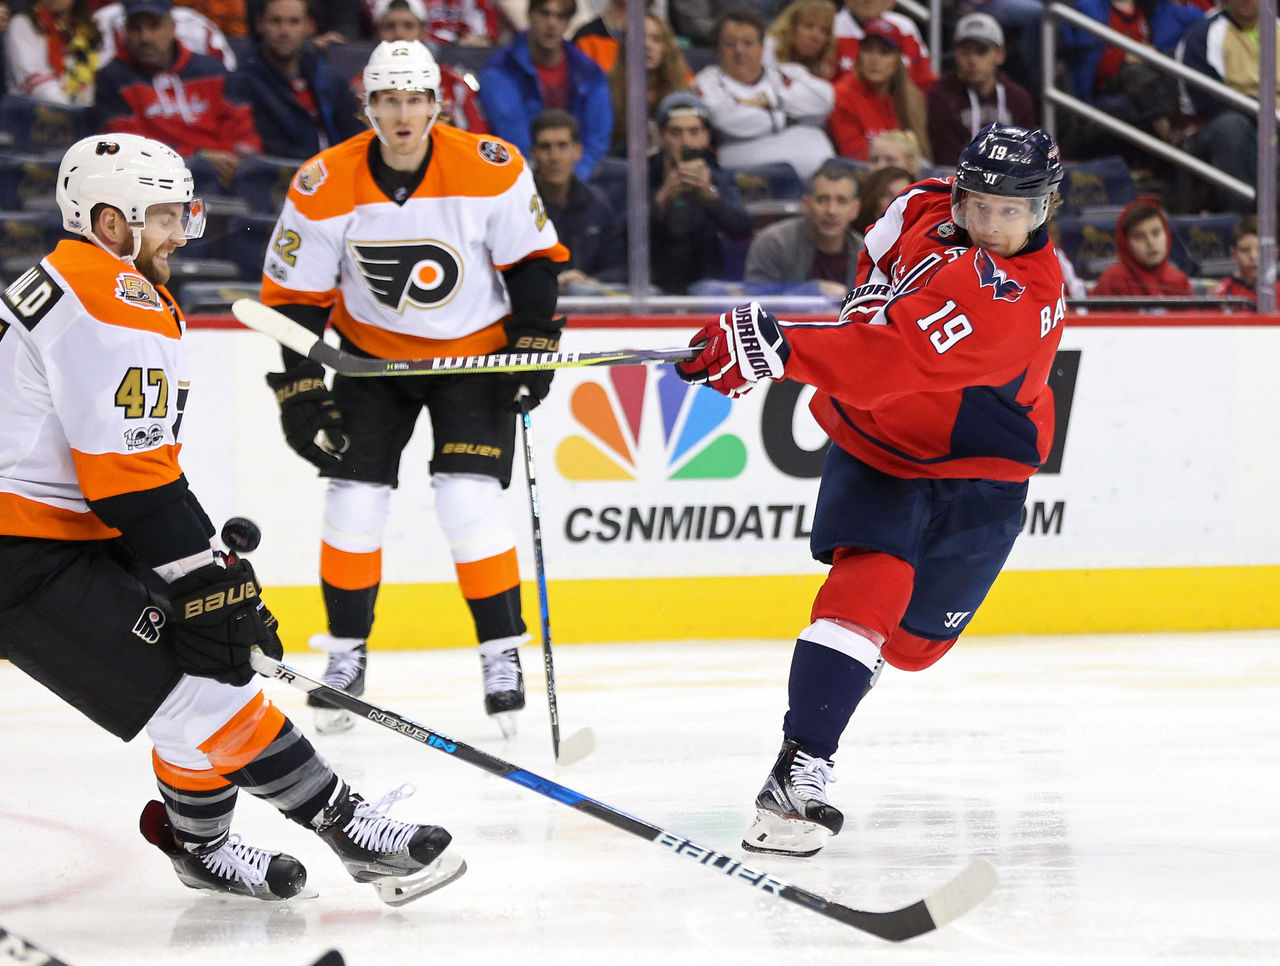 Cropped 2017 01 15t212116z 1893489301 nocid rtrmadp 3 nhl philadelphia flyers at washington capitals